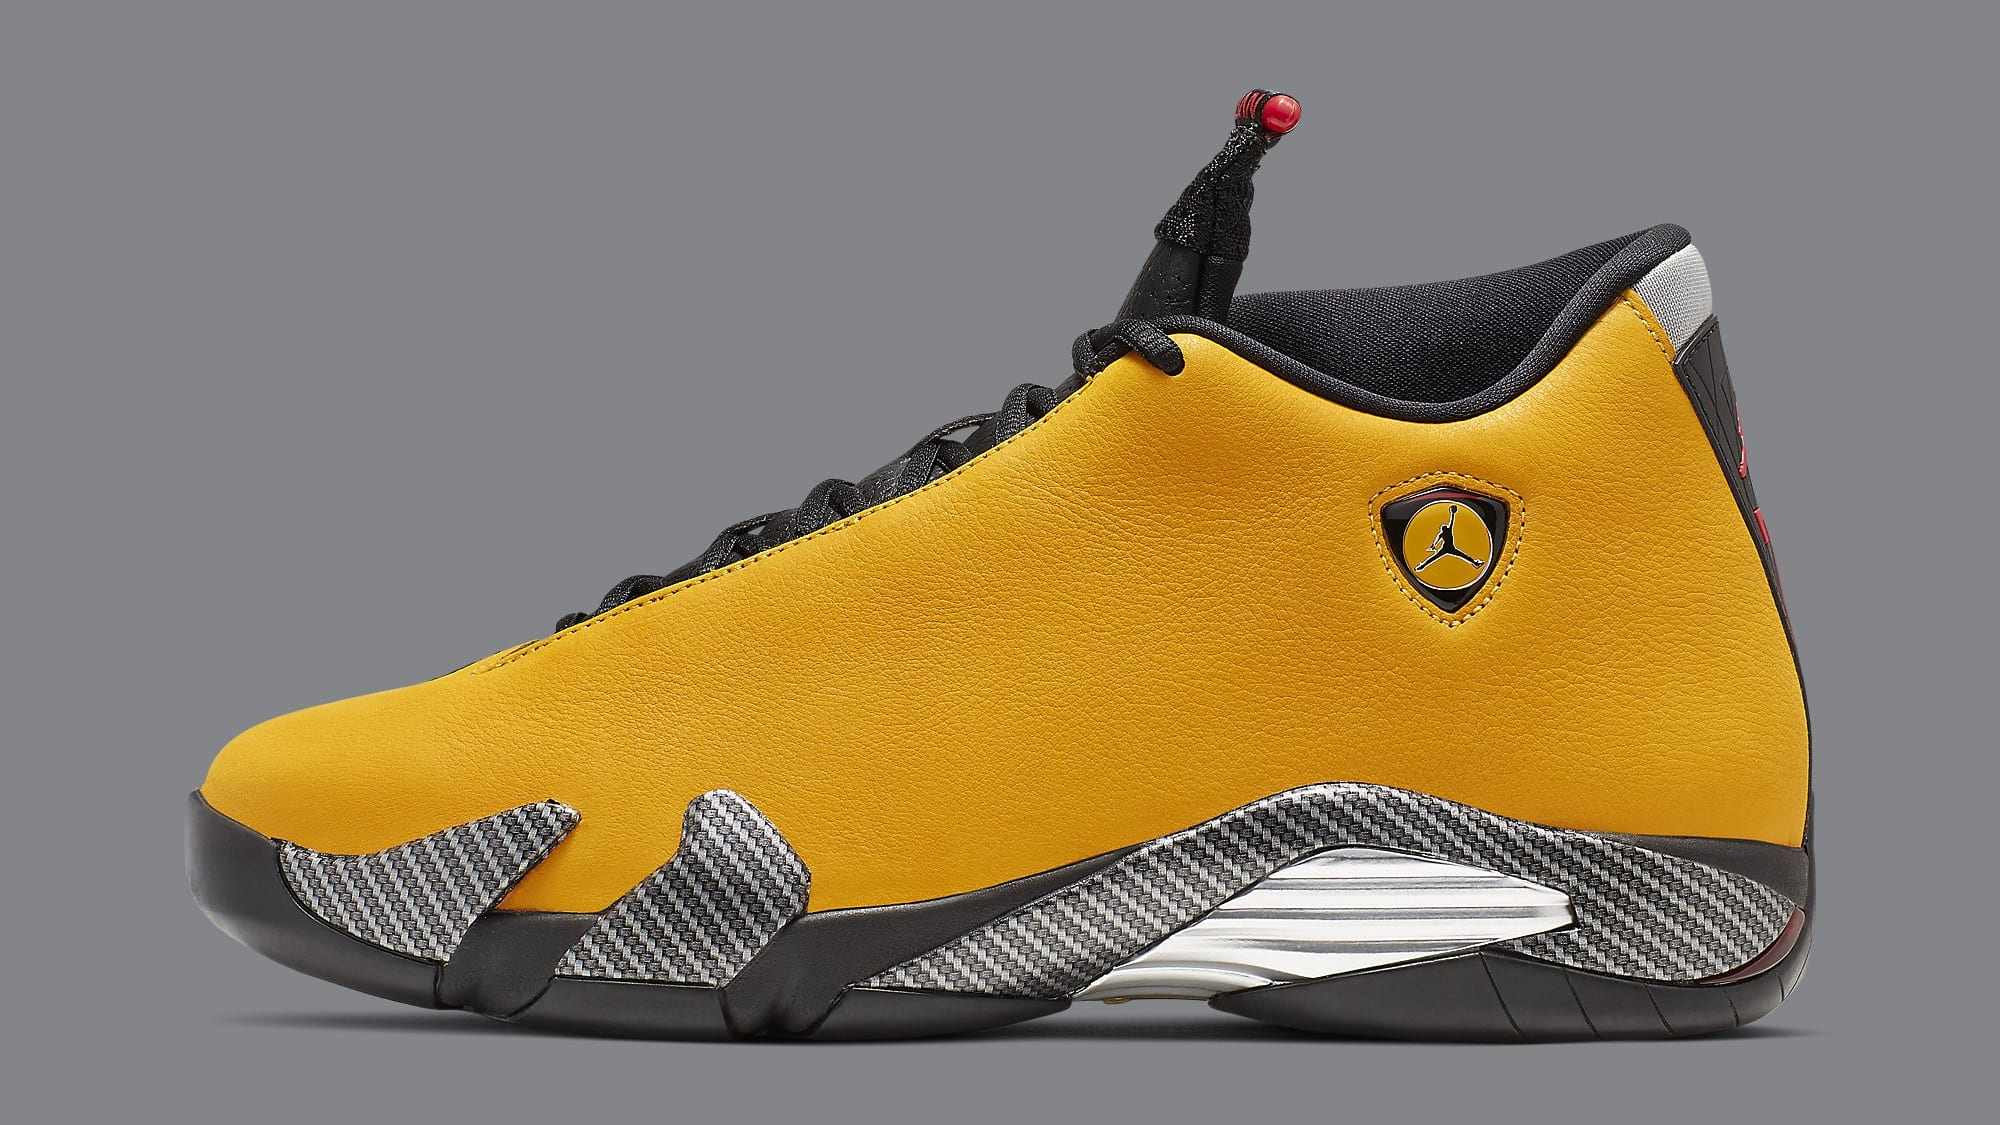 Air Jordan 14 XIV Yellow Ferrari Release Date BQ3685-706 Profile